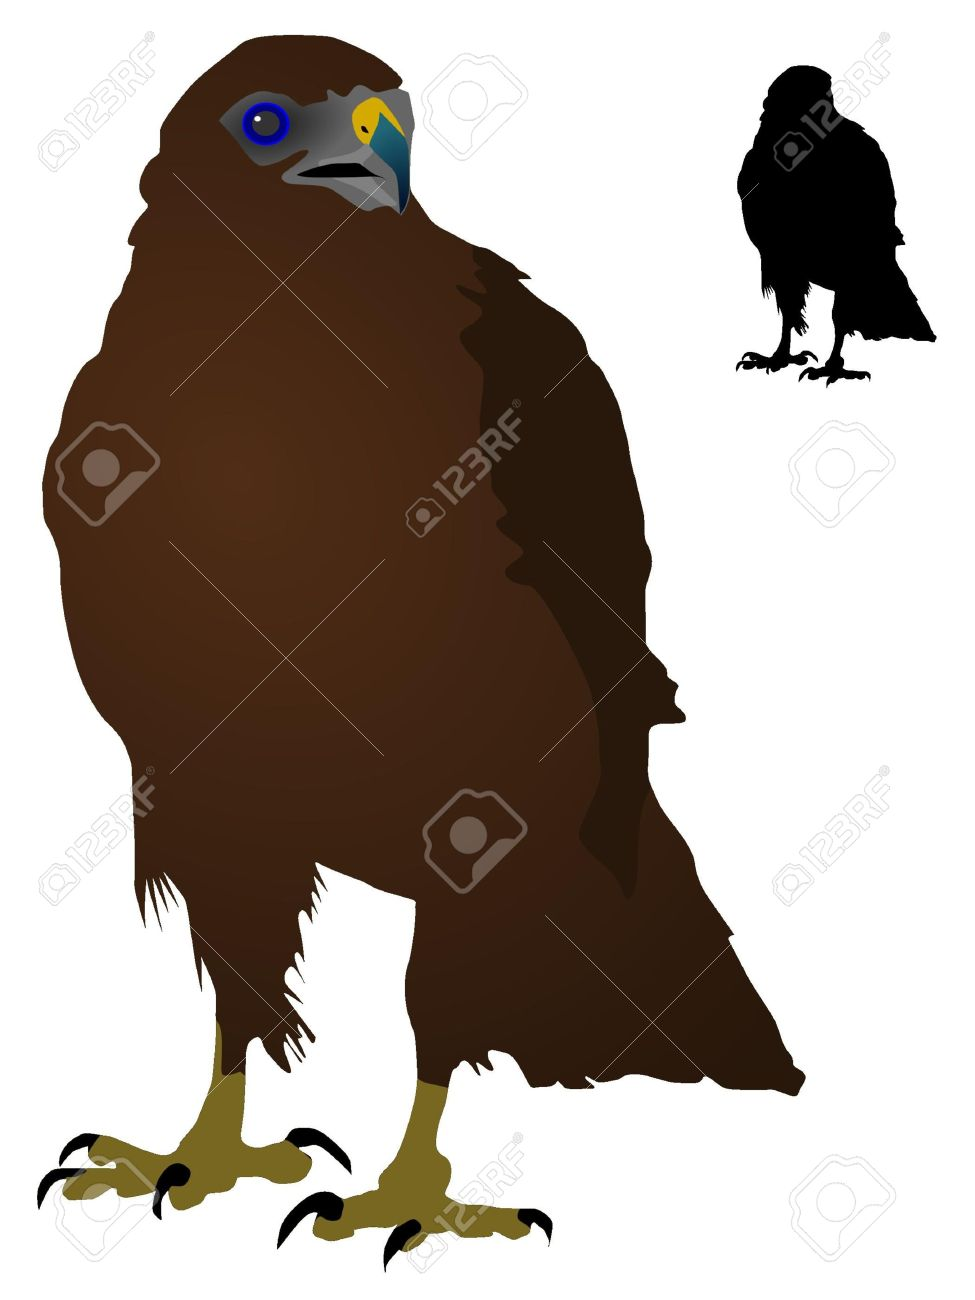 Vectors Steppe Eagle Royalty Free Cliparts, Vectors, And Stock.